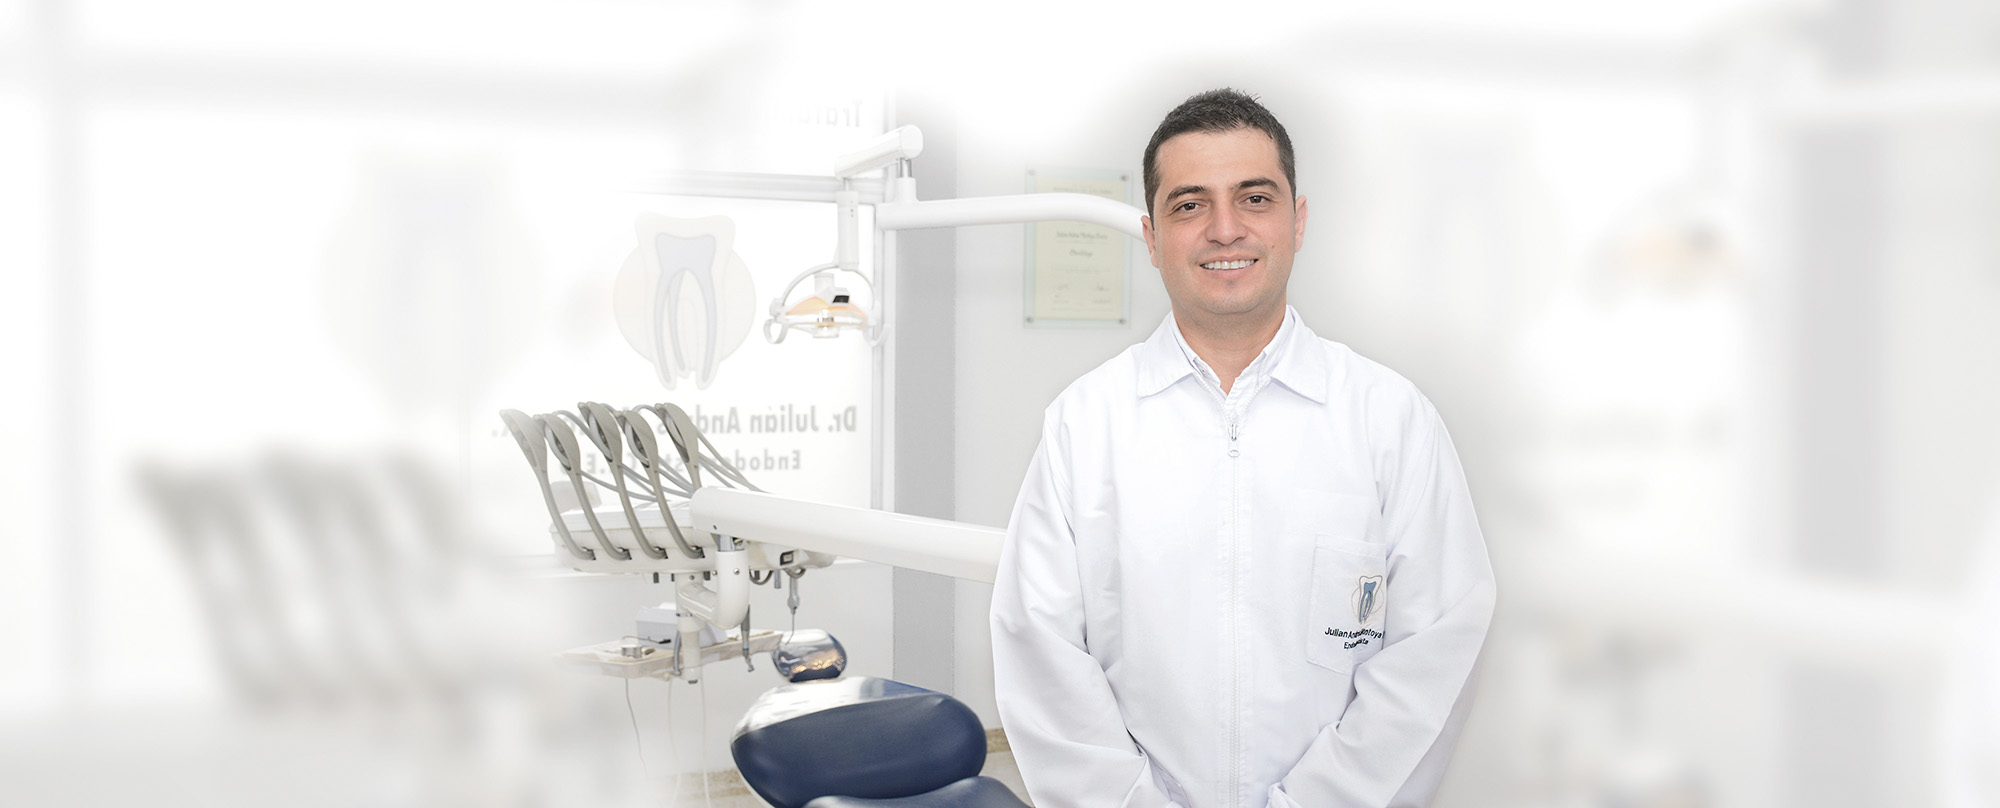 JulianMontoya-Endodoncista-Banner01a